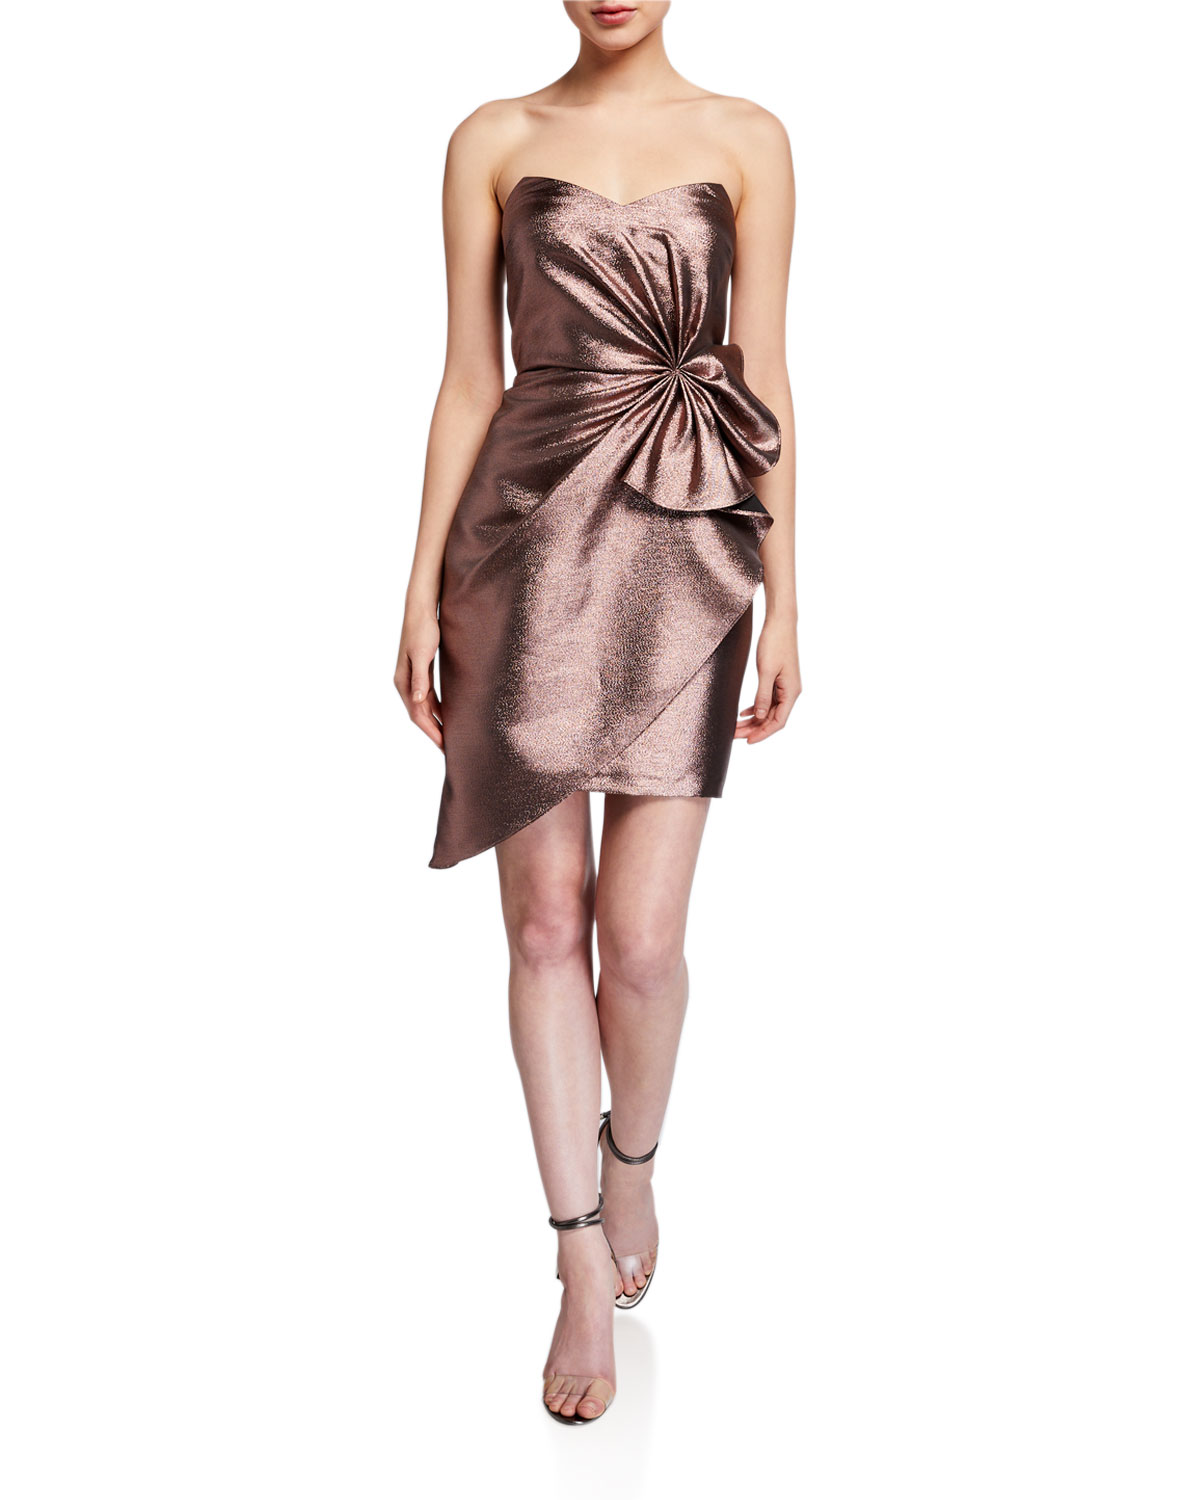 Aidan by Aidan Mattox Metallic Jacquard Strapless Side Bow Asymmetrical Dress